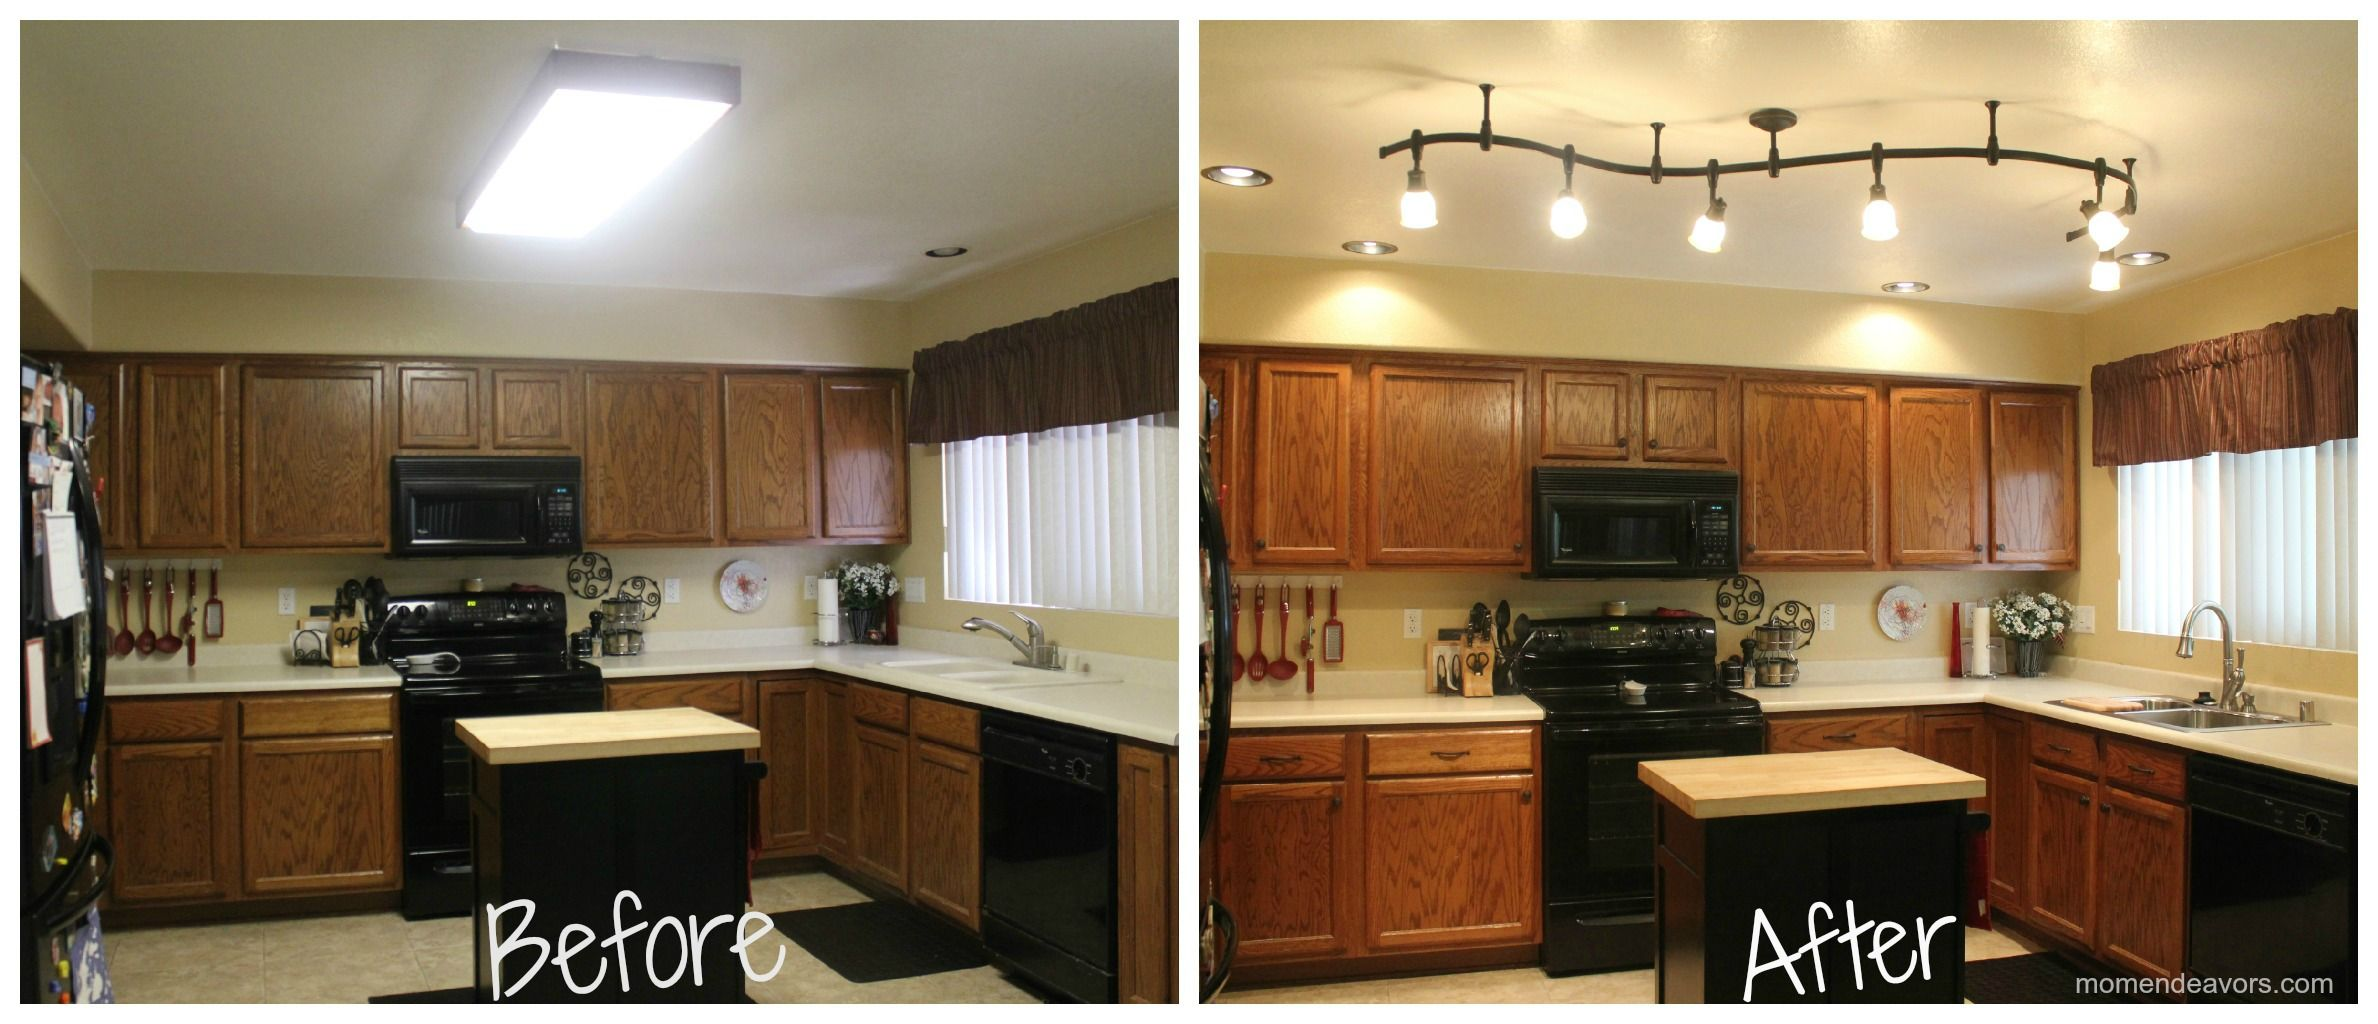 What Are The Most Important Things To Fix Before Selling A Home Overhead Kitchen Lighting